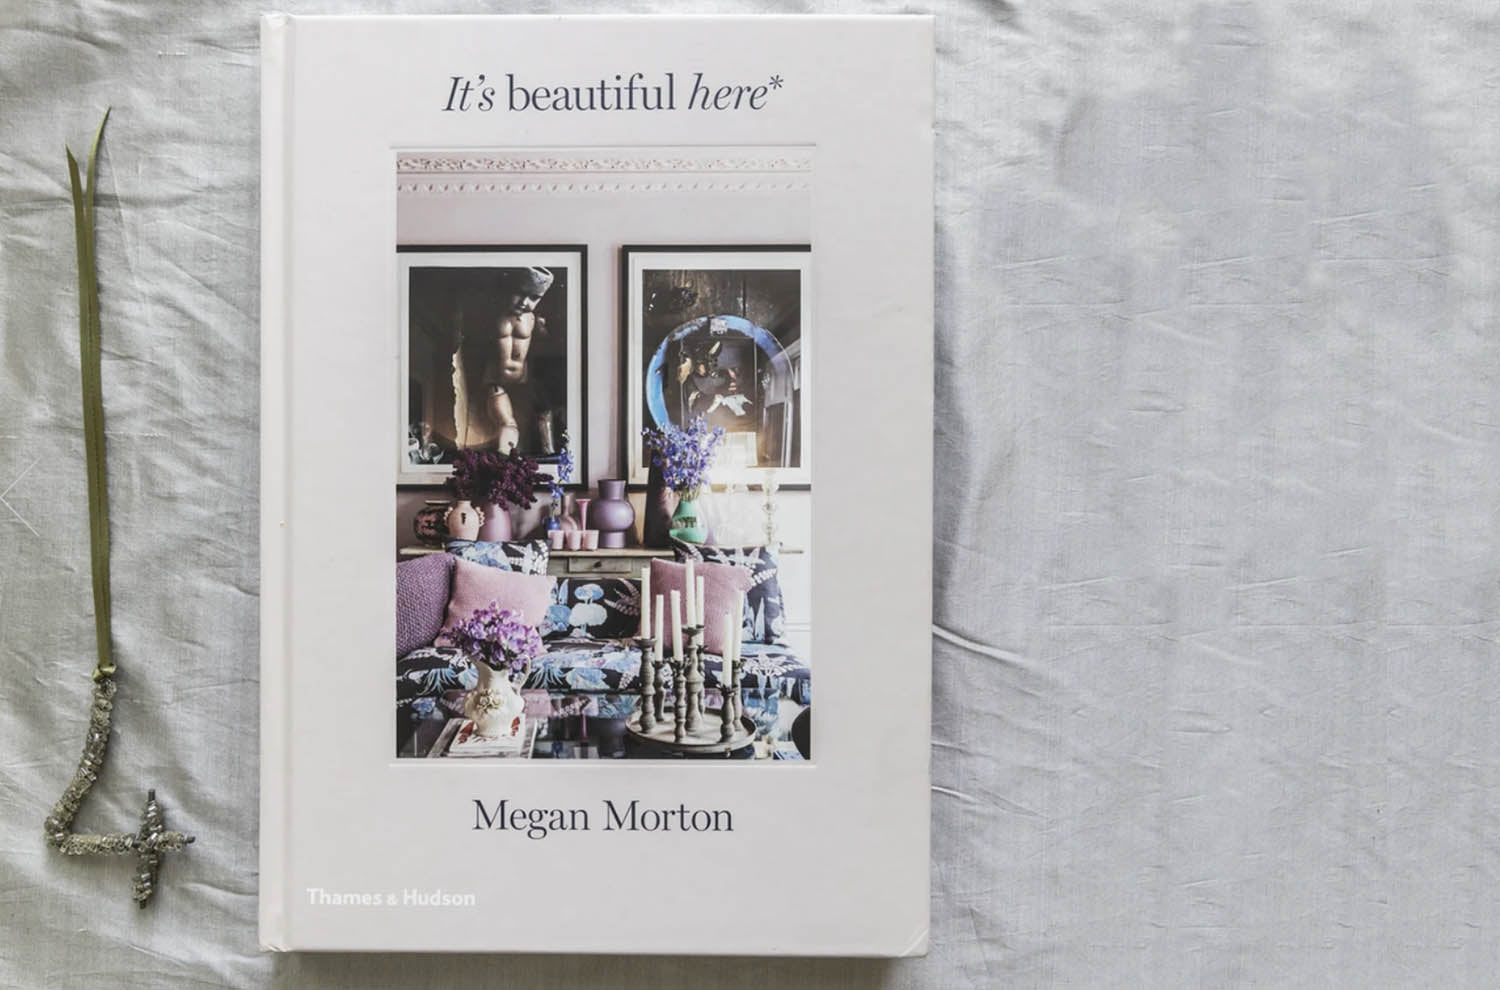 It's Beautiful Here by Megan Morton